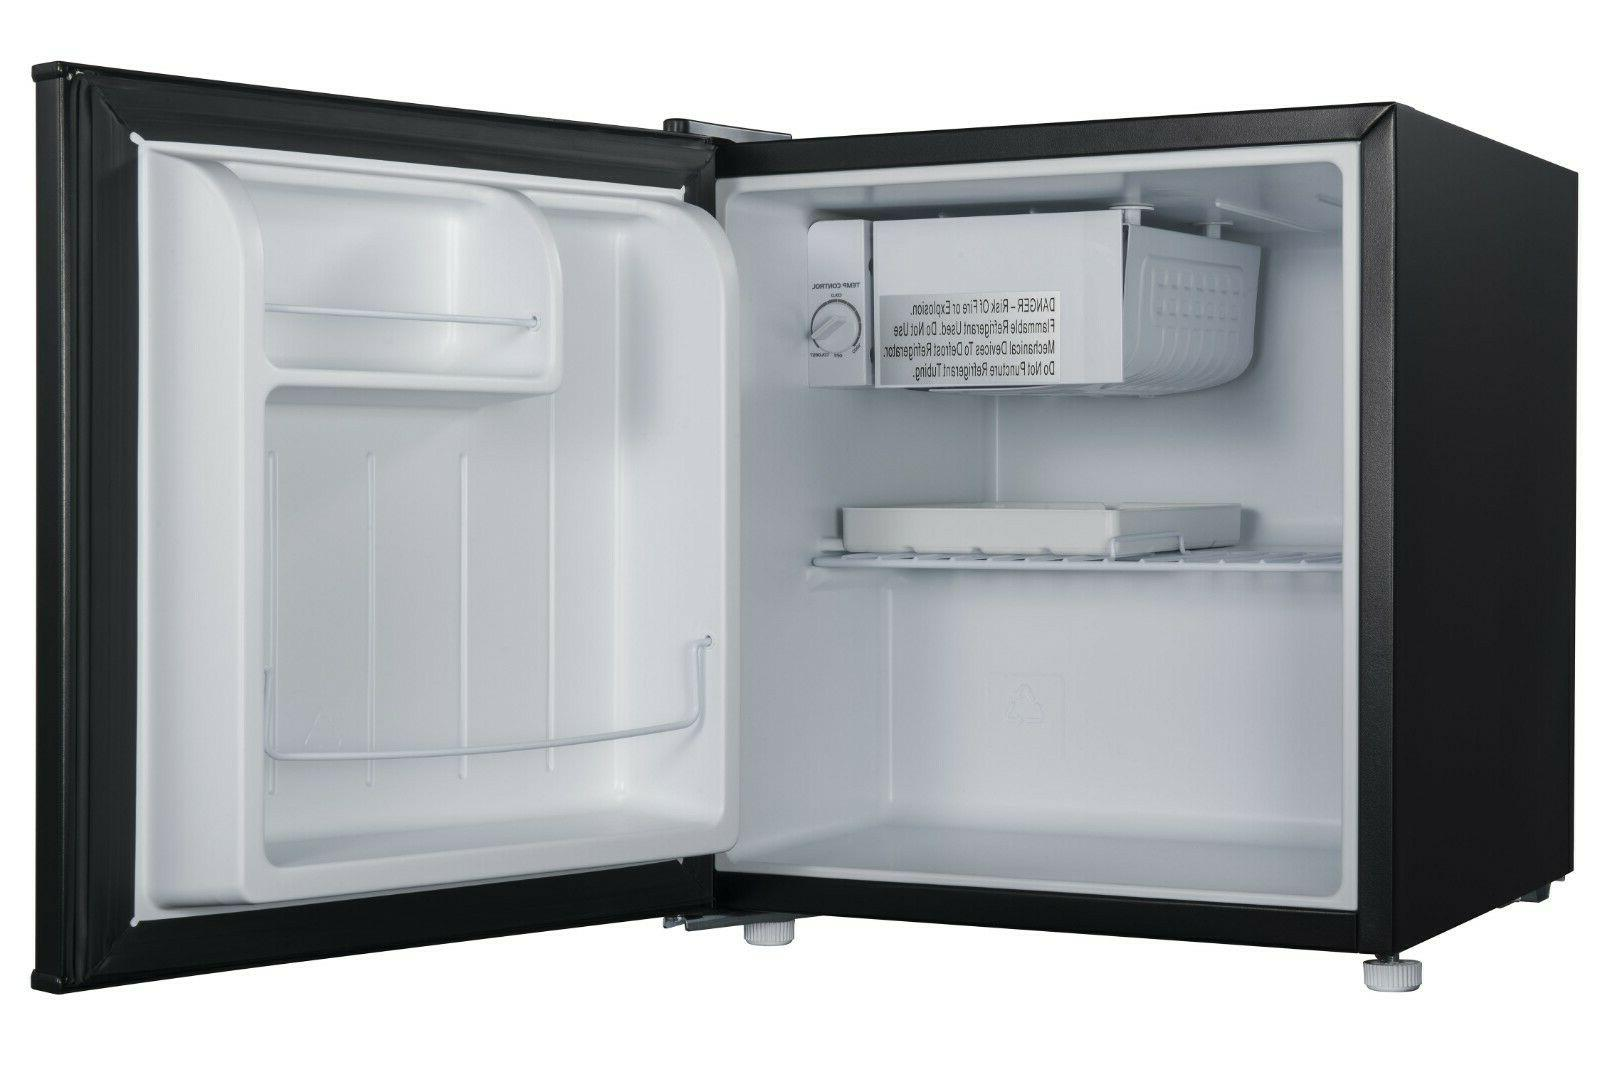 Small For 1.7 Ft With Freezer Compact Dorm